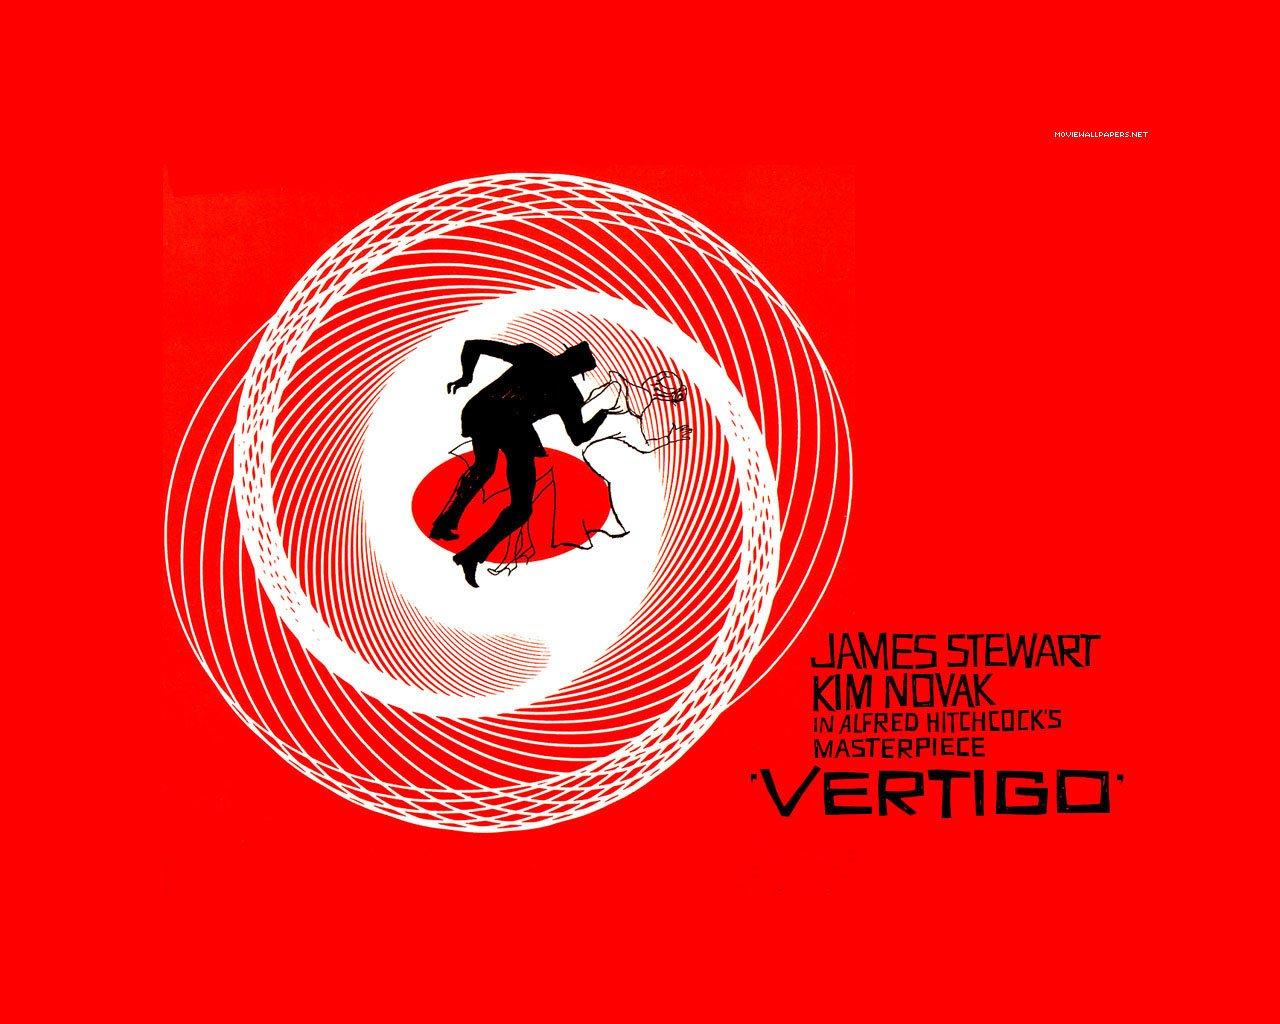 12 Vertigo HD Wallpapers Background Images 1280x1024